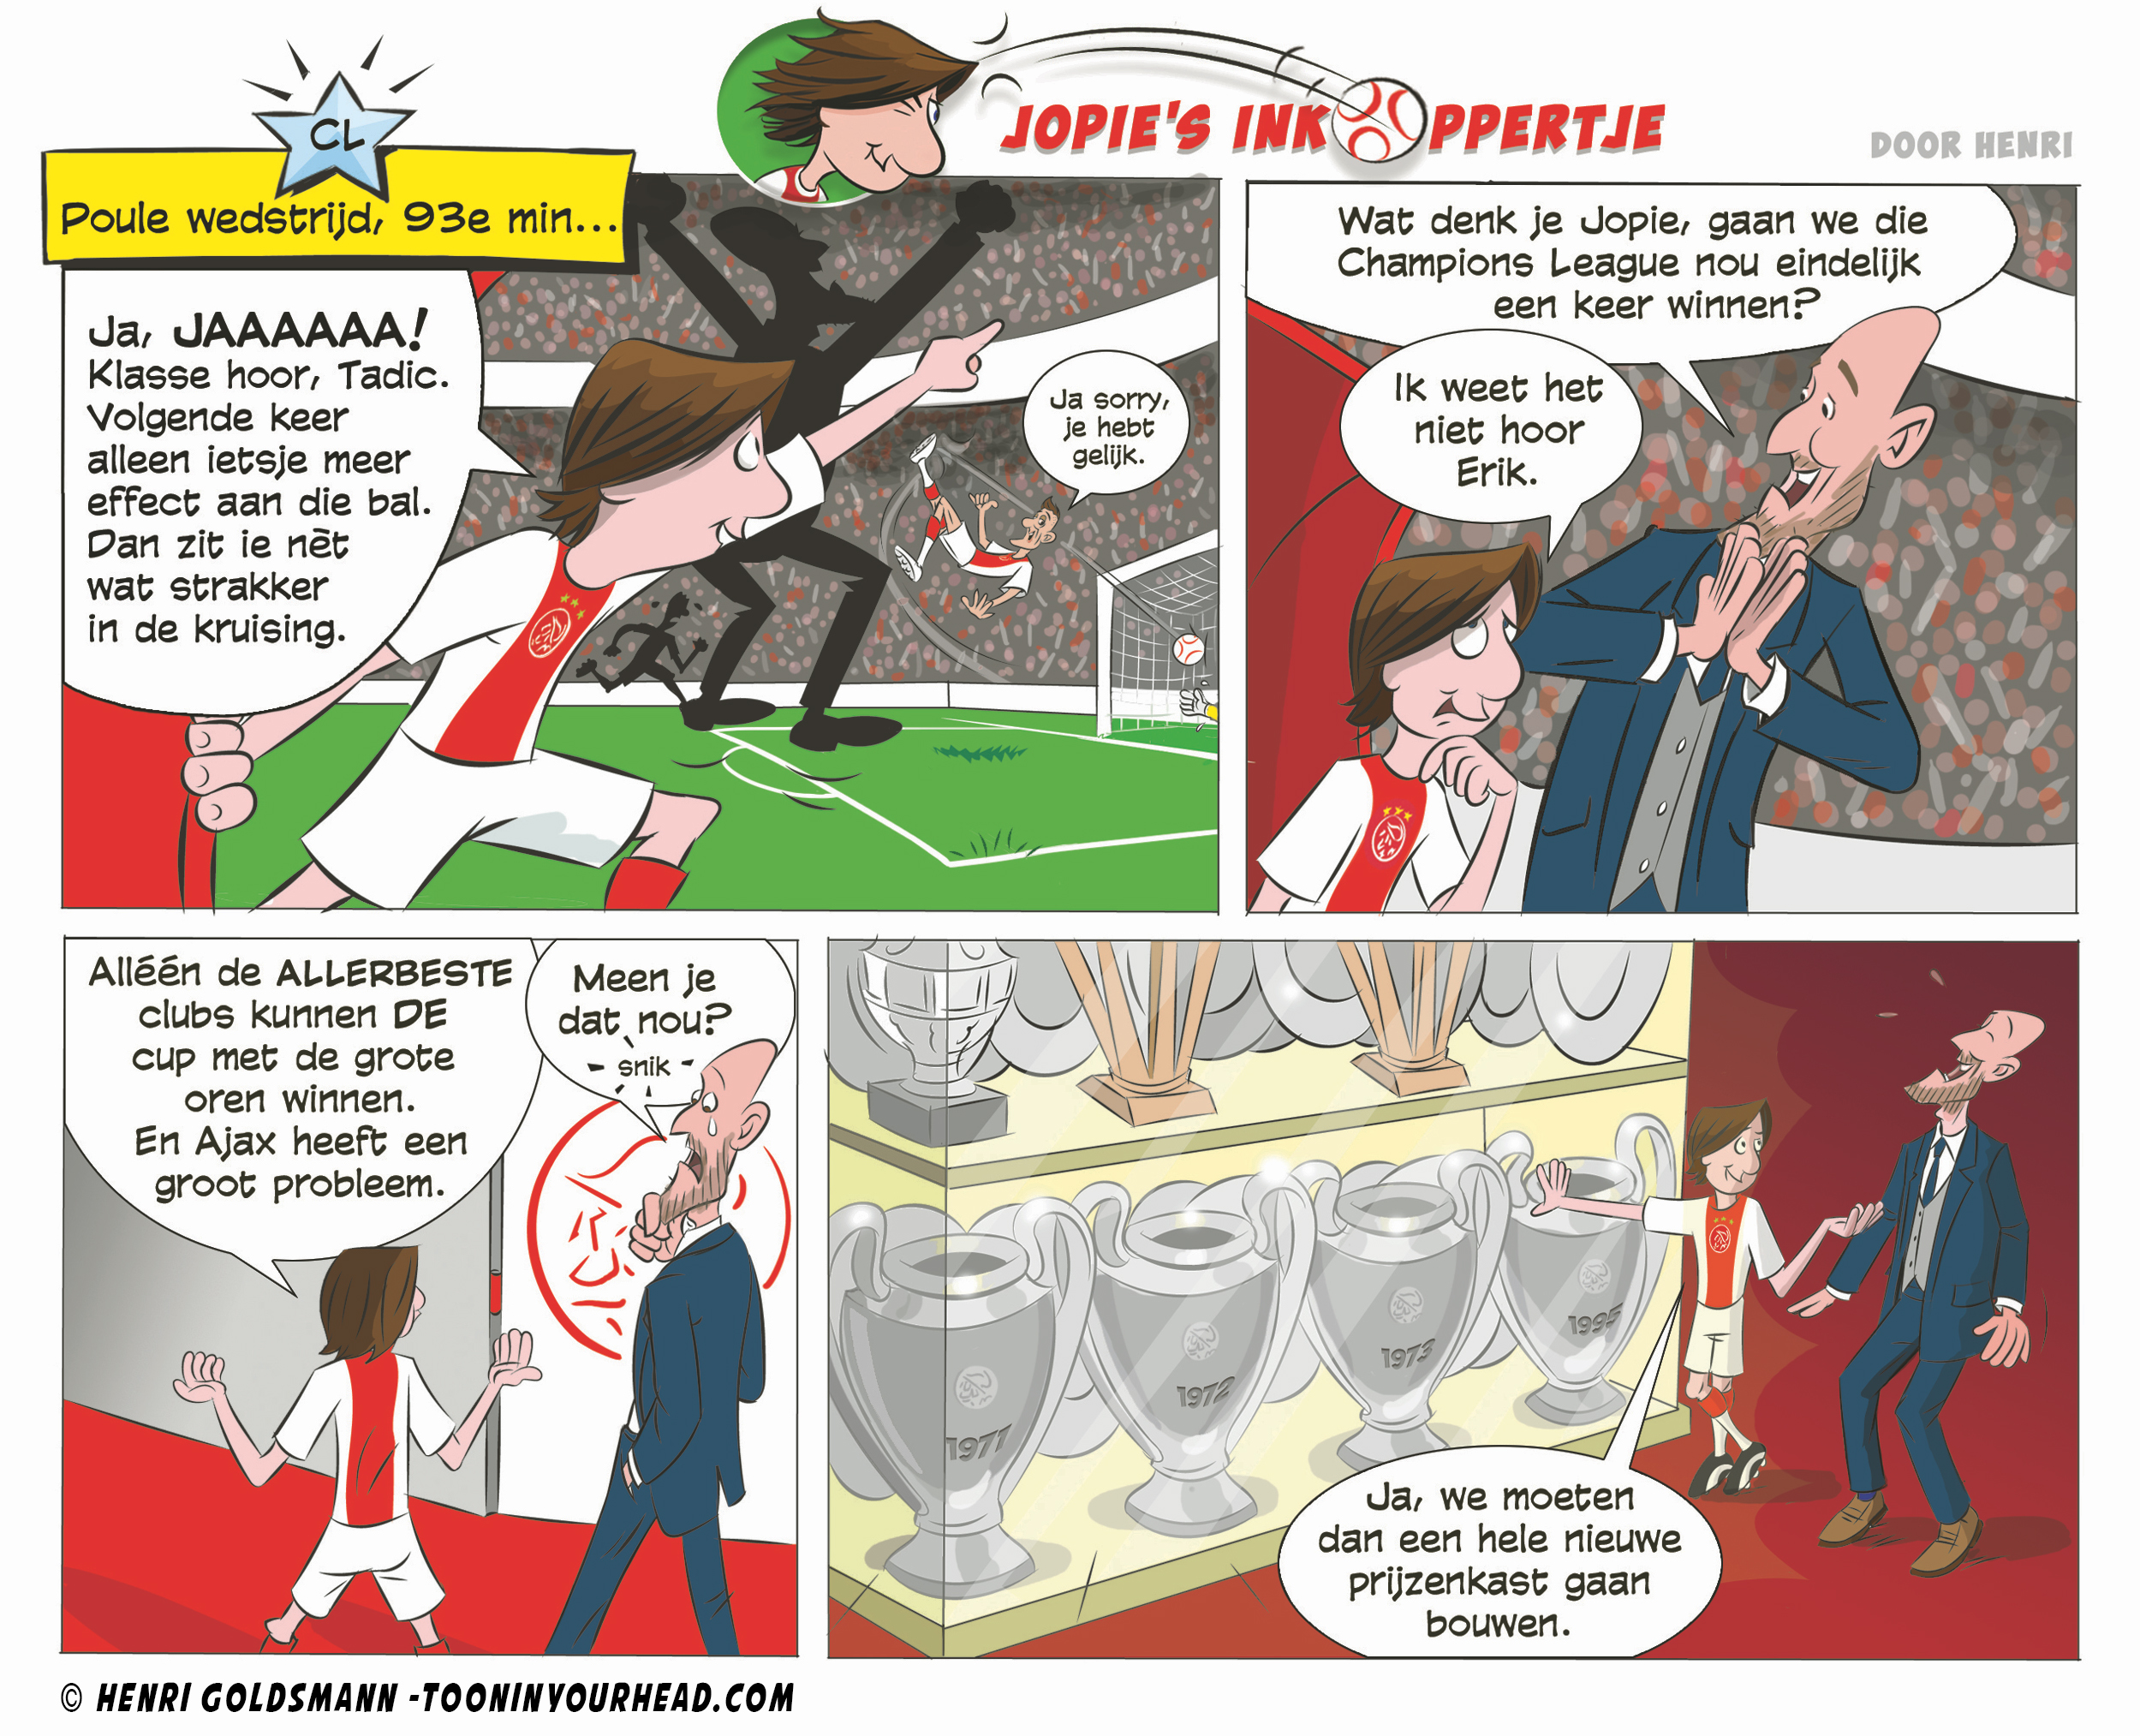 Comic Strip Feature Ajax by Henri Goldsm